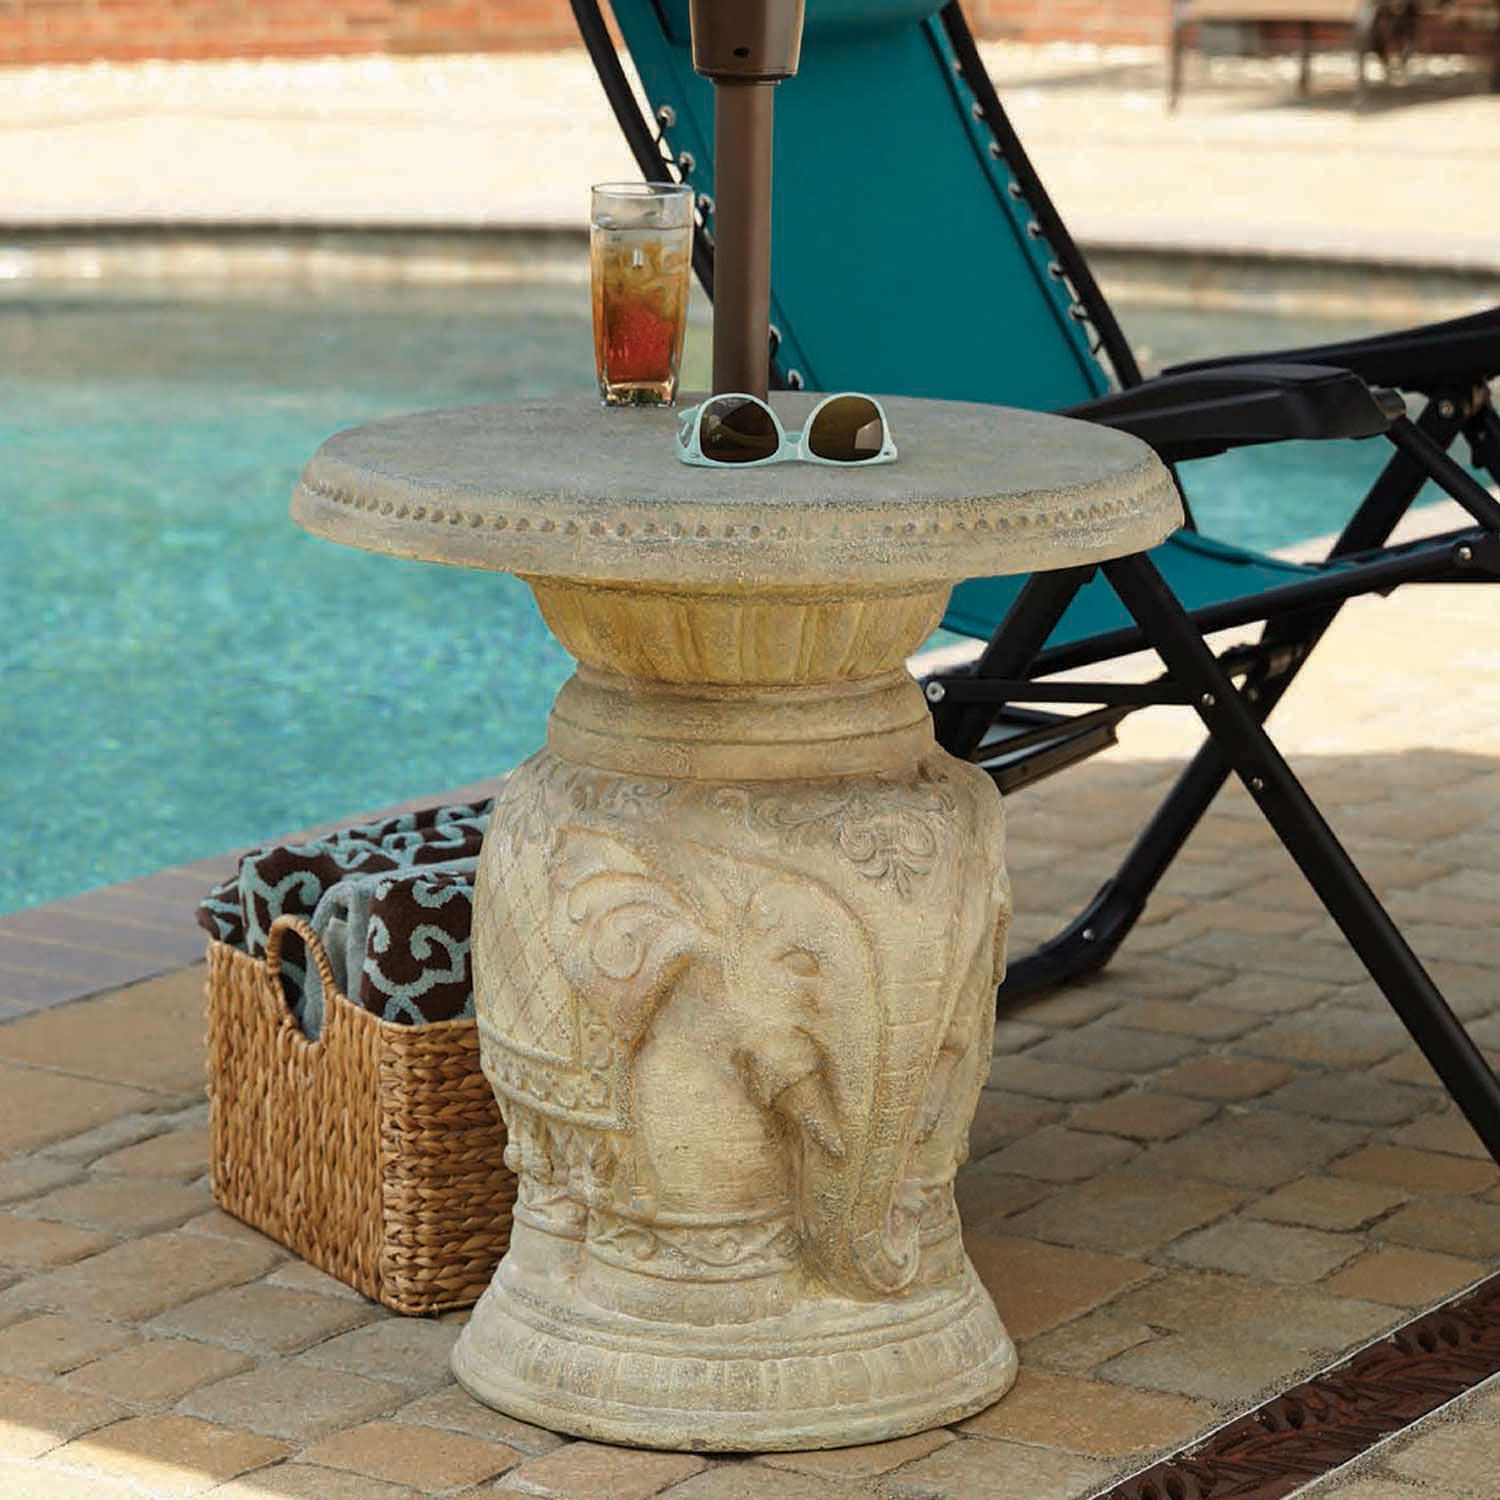 garden enchanting outdoor patio decor ideas with umbrellas target umbrella for nic table and stand stands tilt furniture accent pedestal large glass metal coffee unique drawer